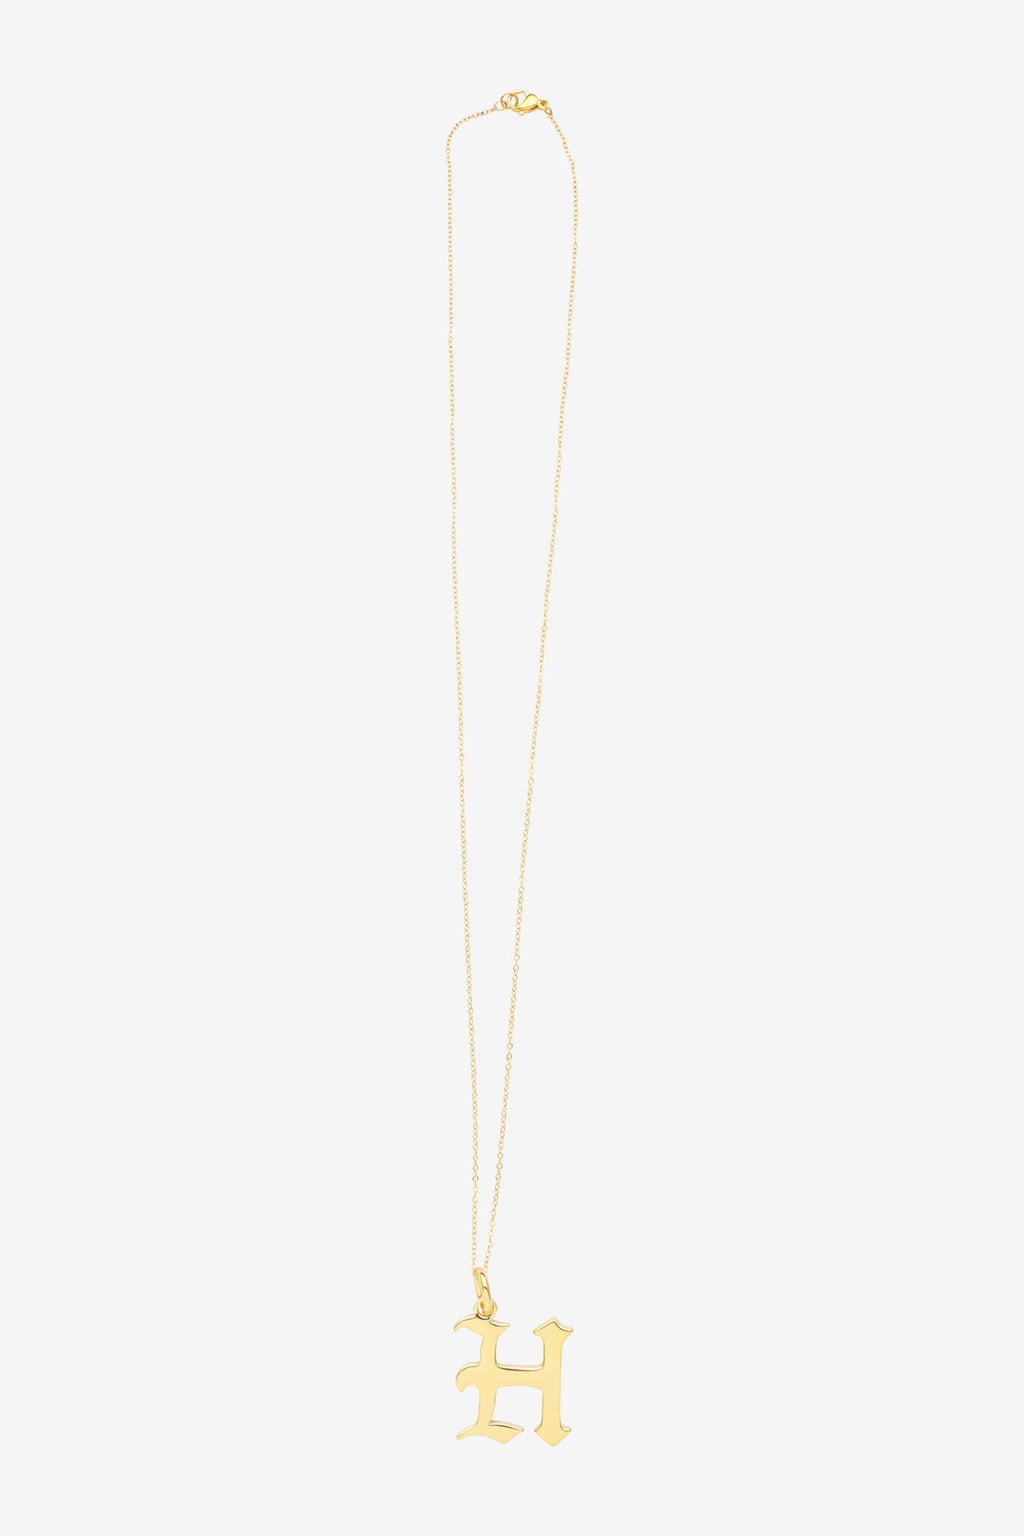 Gold Letter H Necklace